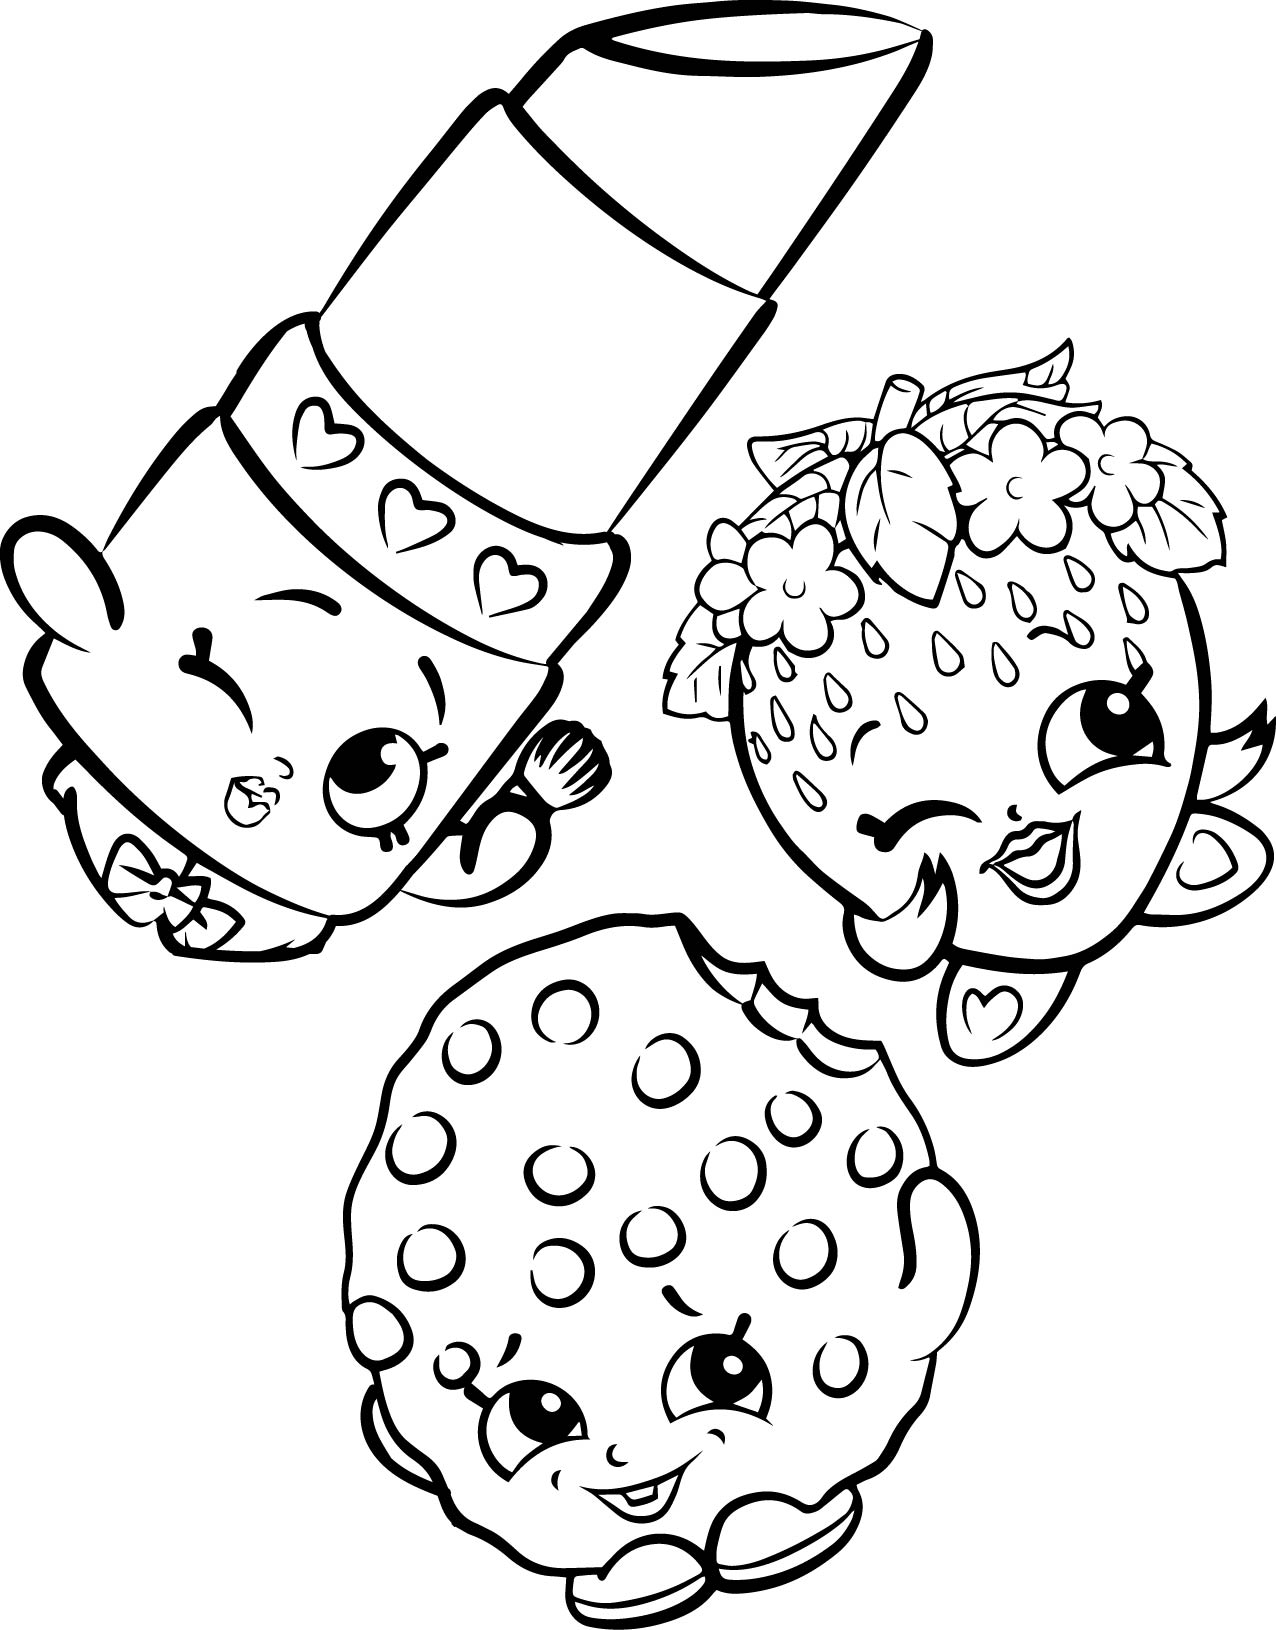 Coloring games of shopkins - Shopkins Coloring Page